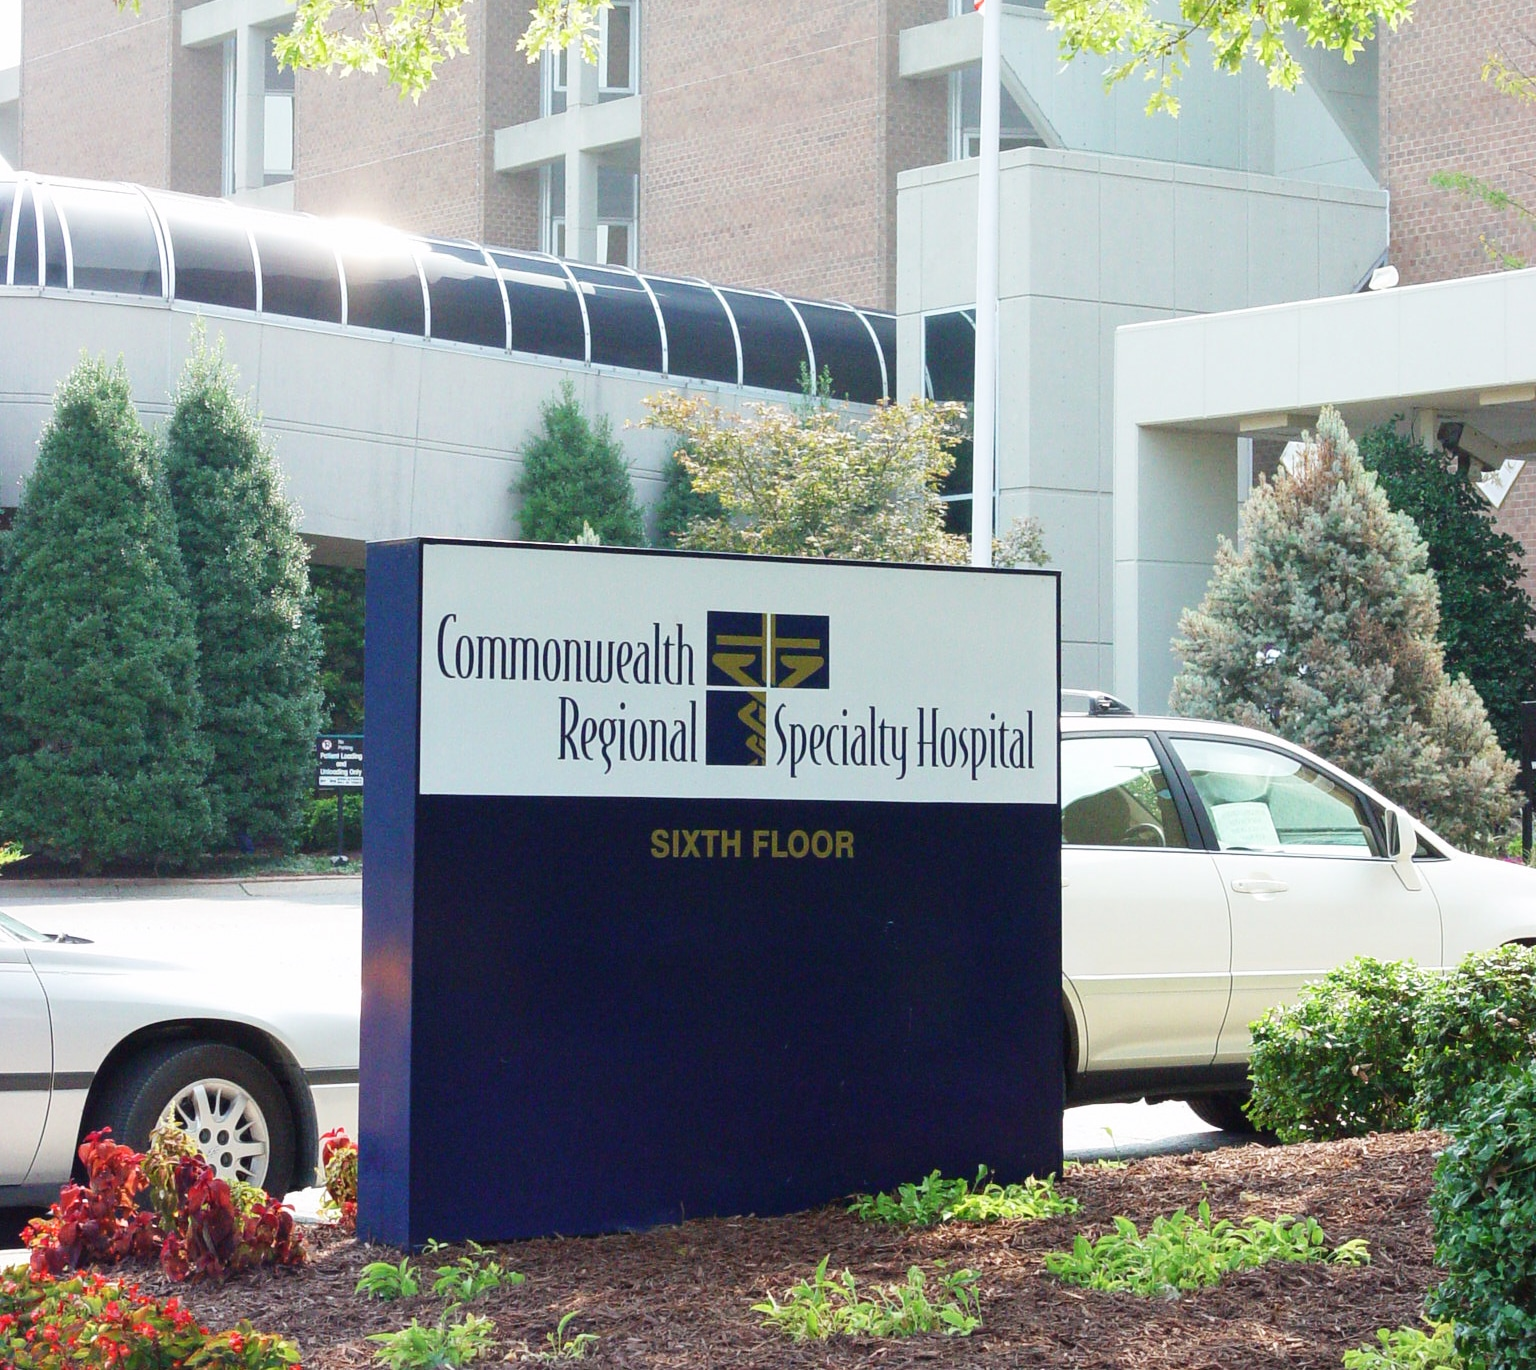 Exterior view of the Commonwealth Regional Specialty Hospital sign.